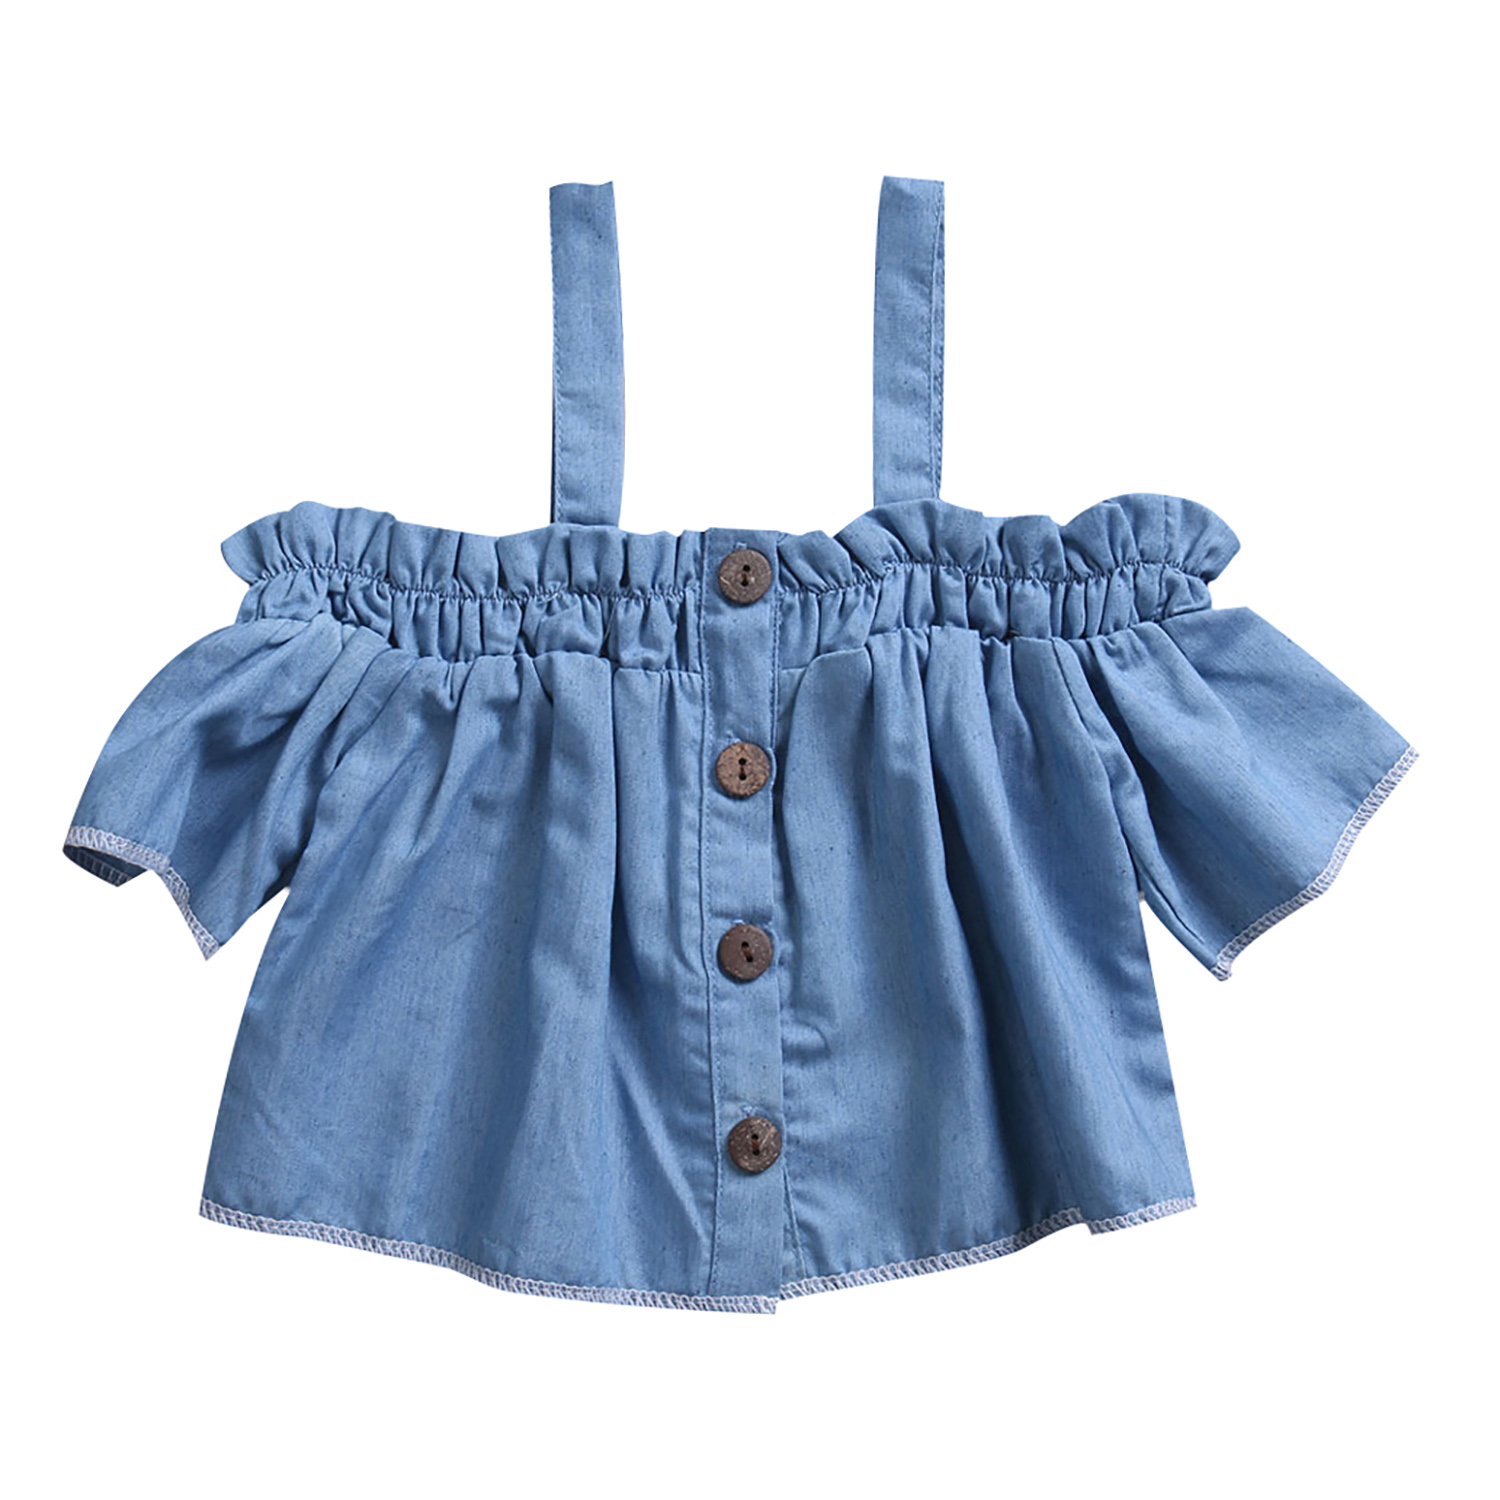 a95ccd959 2017 Kid Girls denim top New Fashion Toddler Kids Baby Girl Clothes Denim  Off Shoulder Tops Outfits Children Clothing 1-4Y